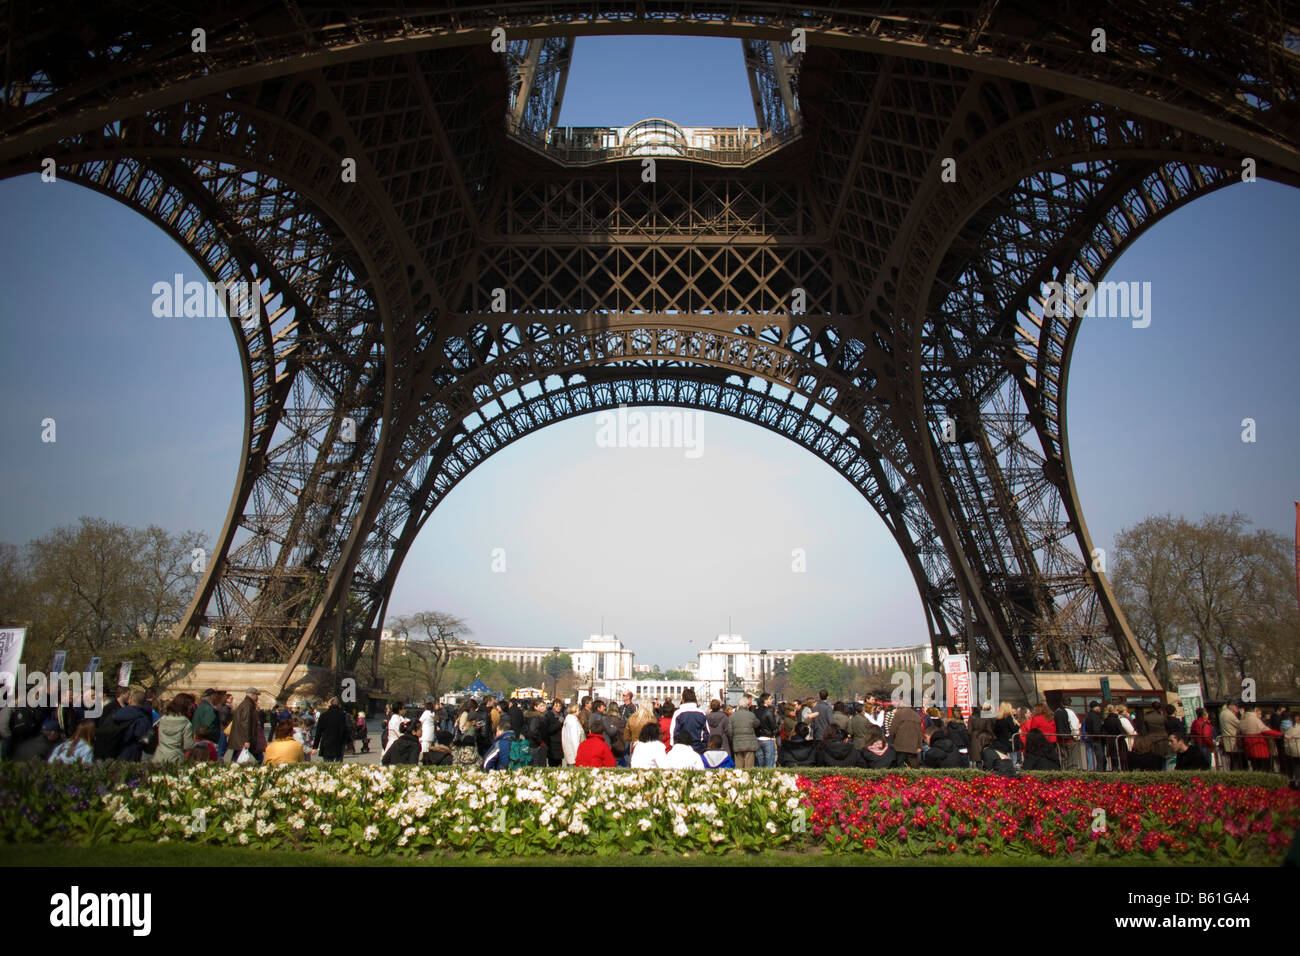 Visitors to the Eiffel Tower observe Paris' iconic structure - Stock Image